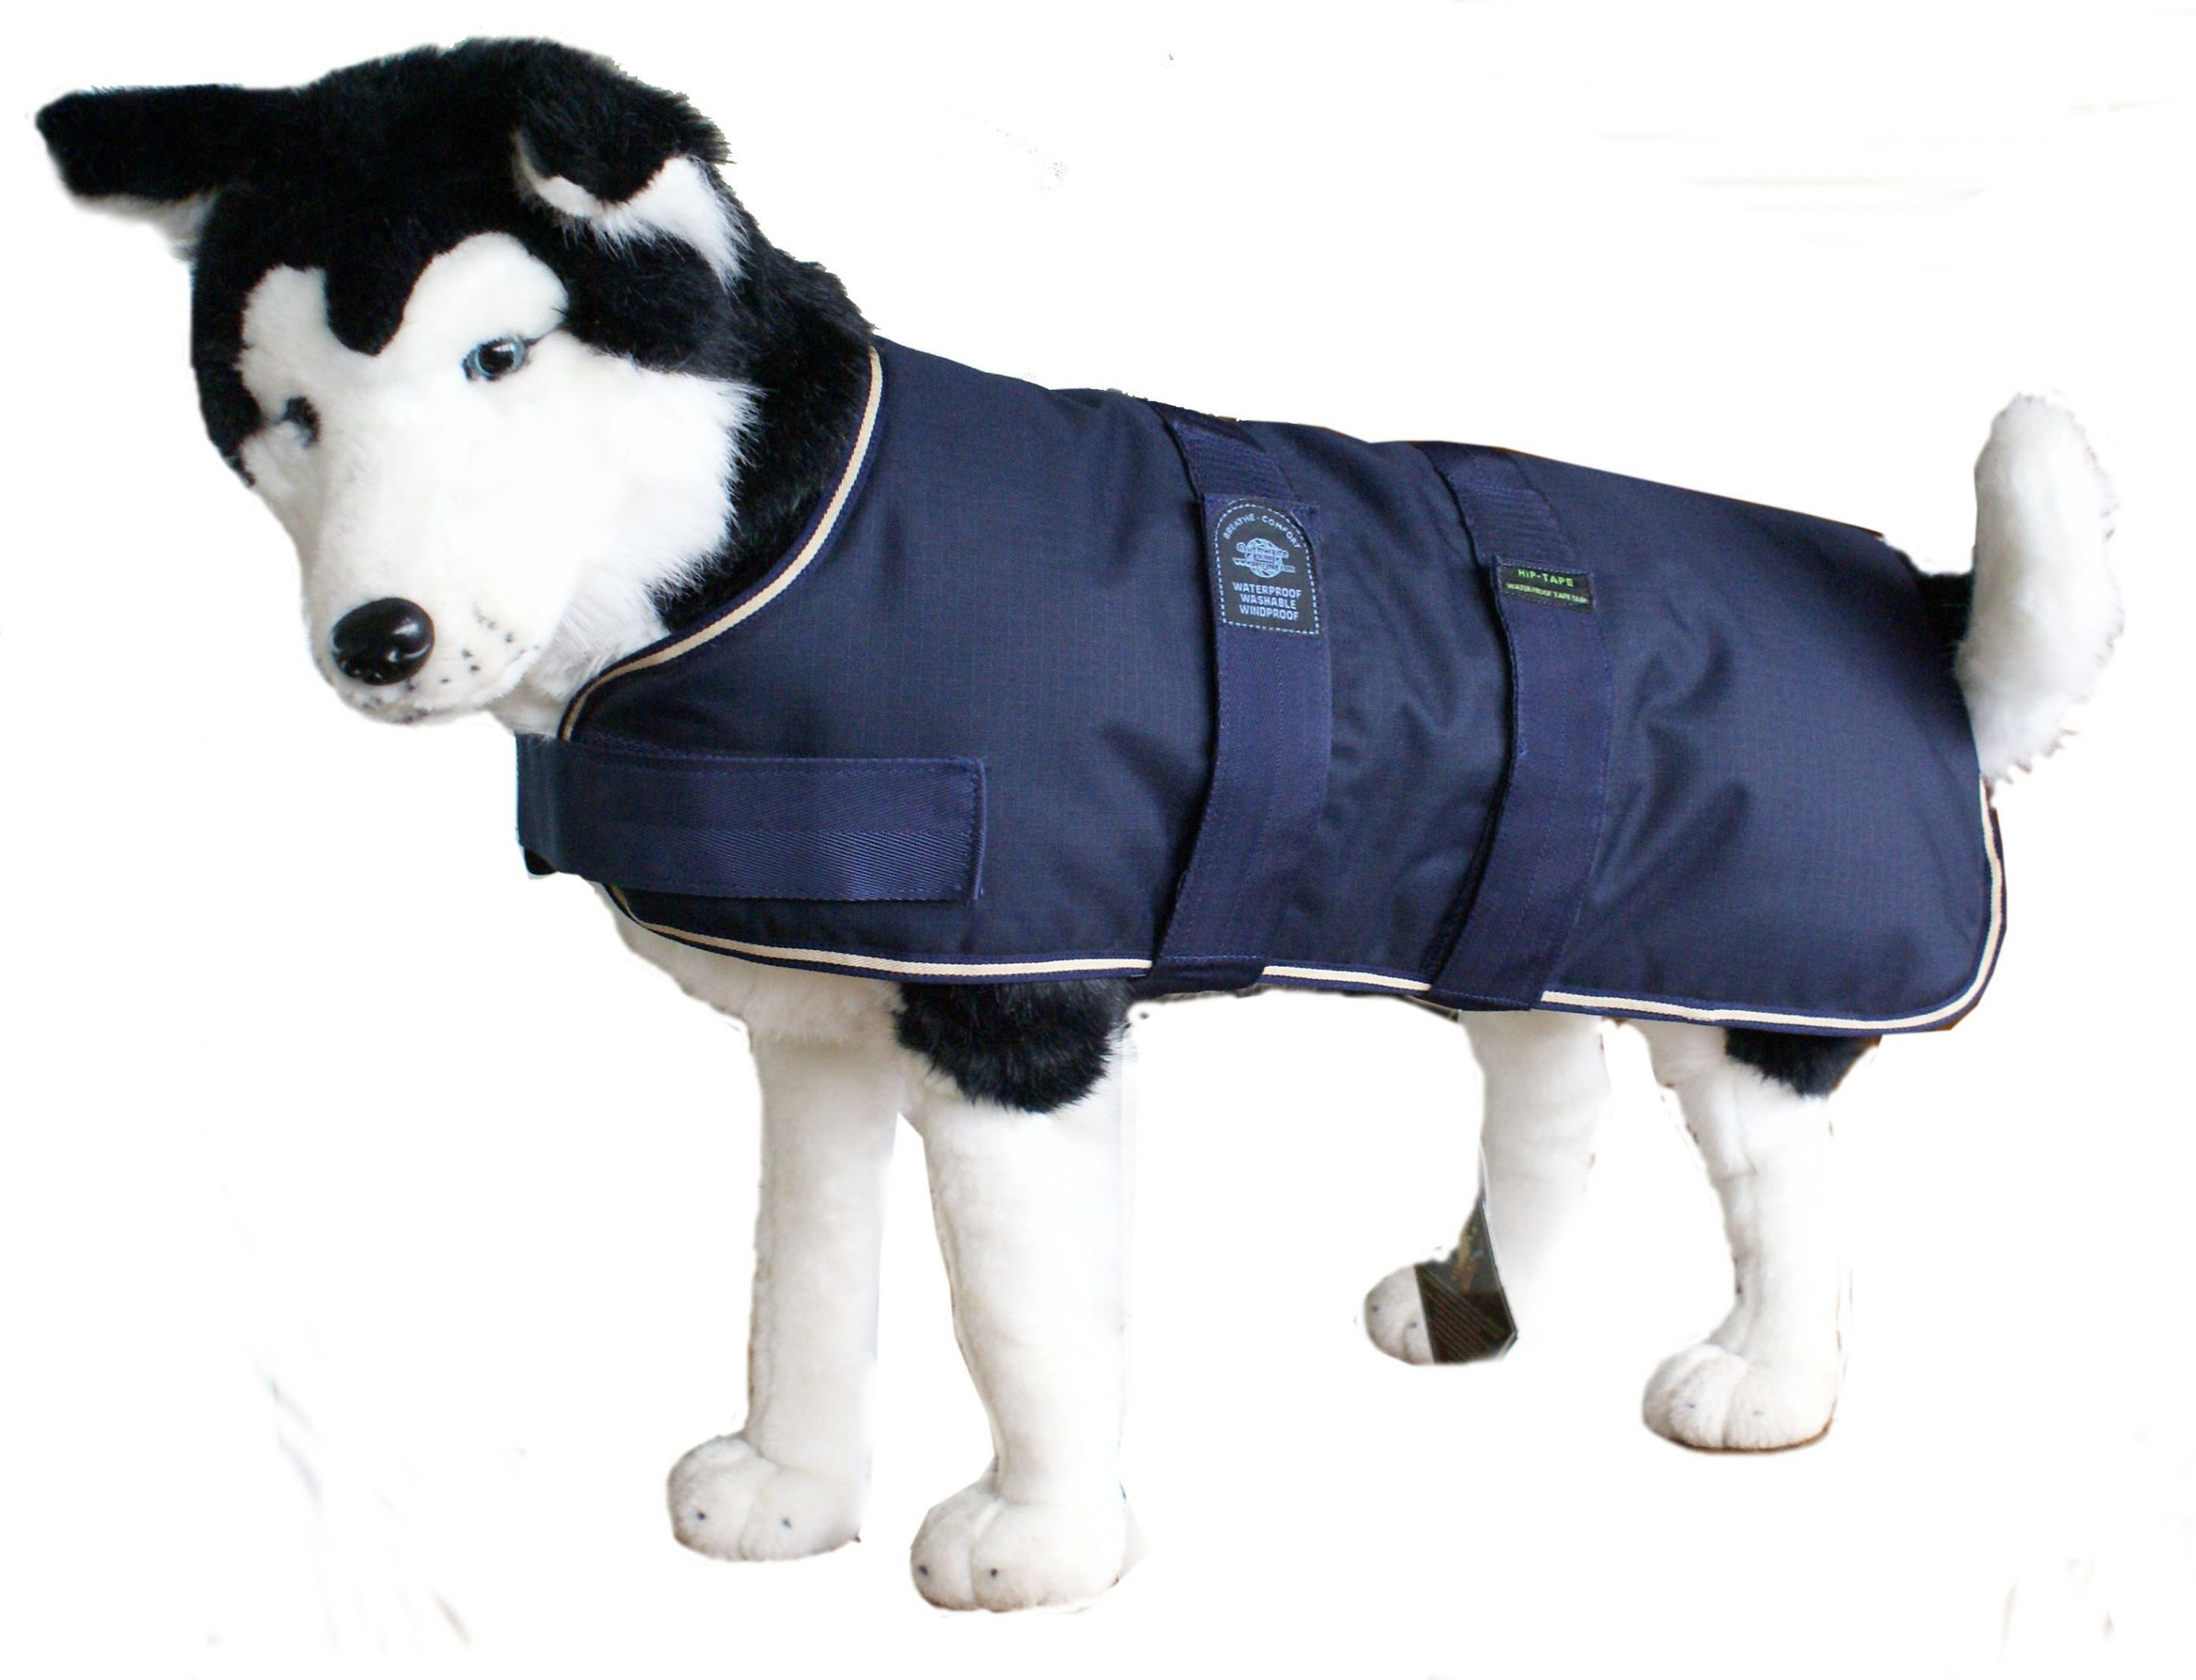 Warm Dog Coat photo - 1